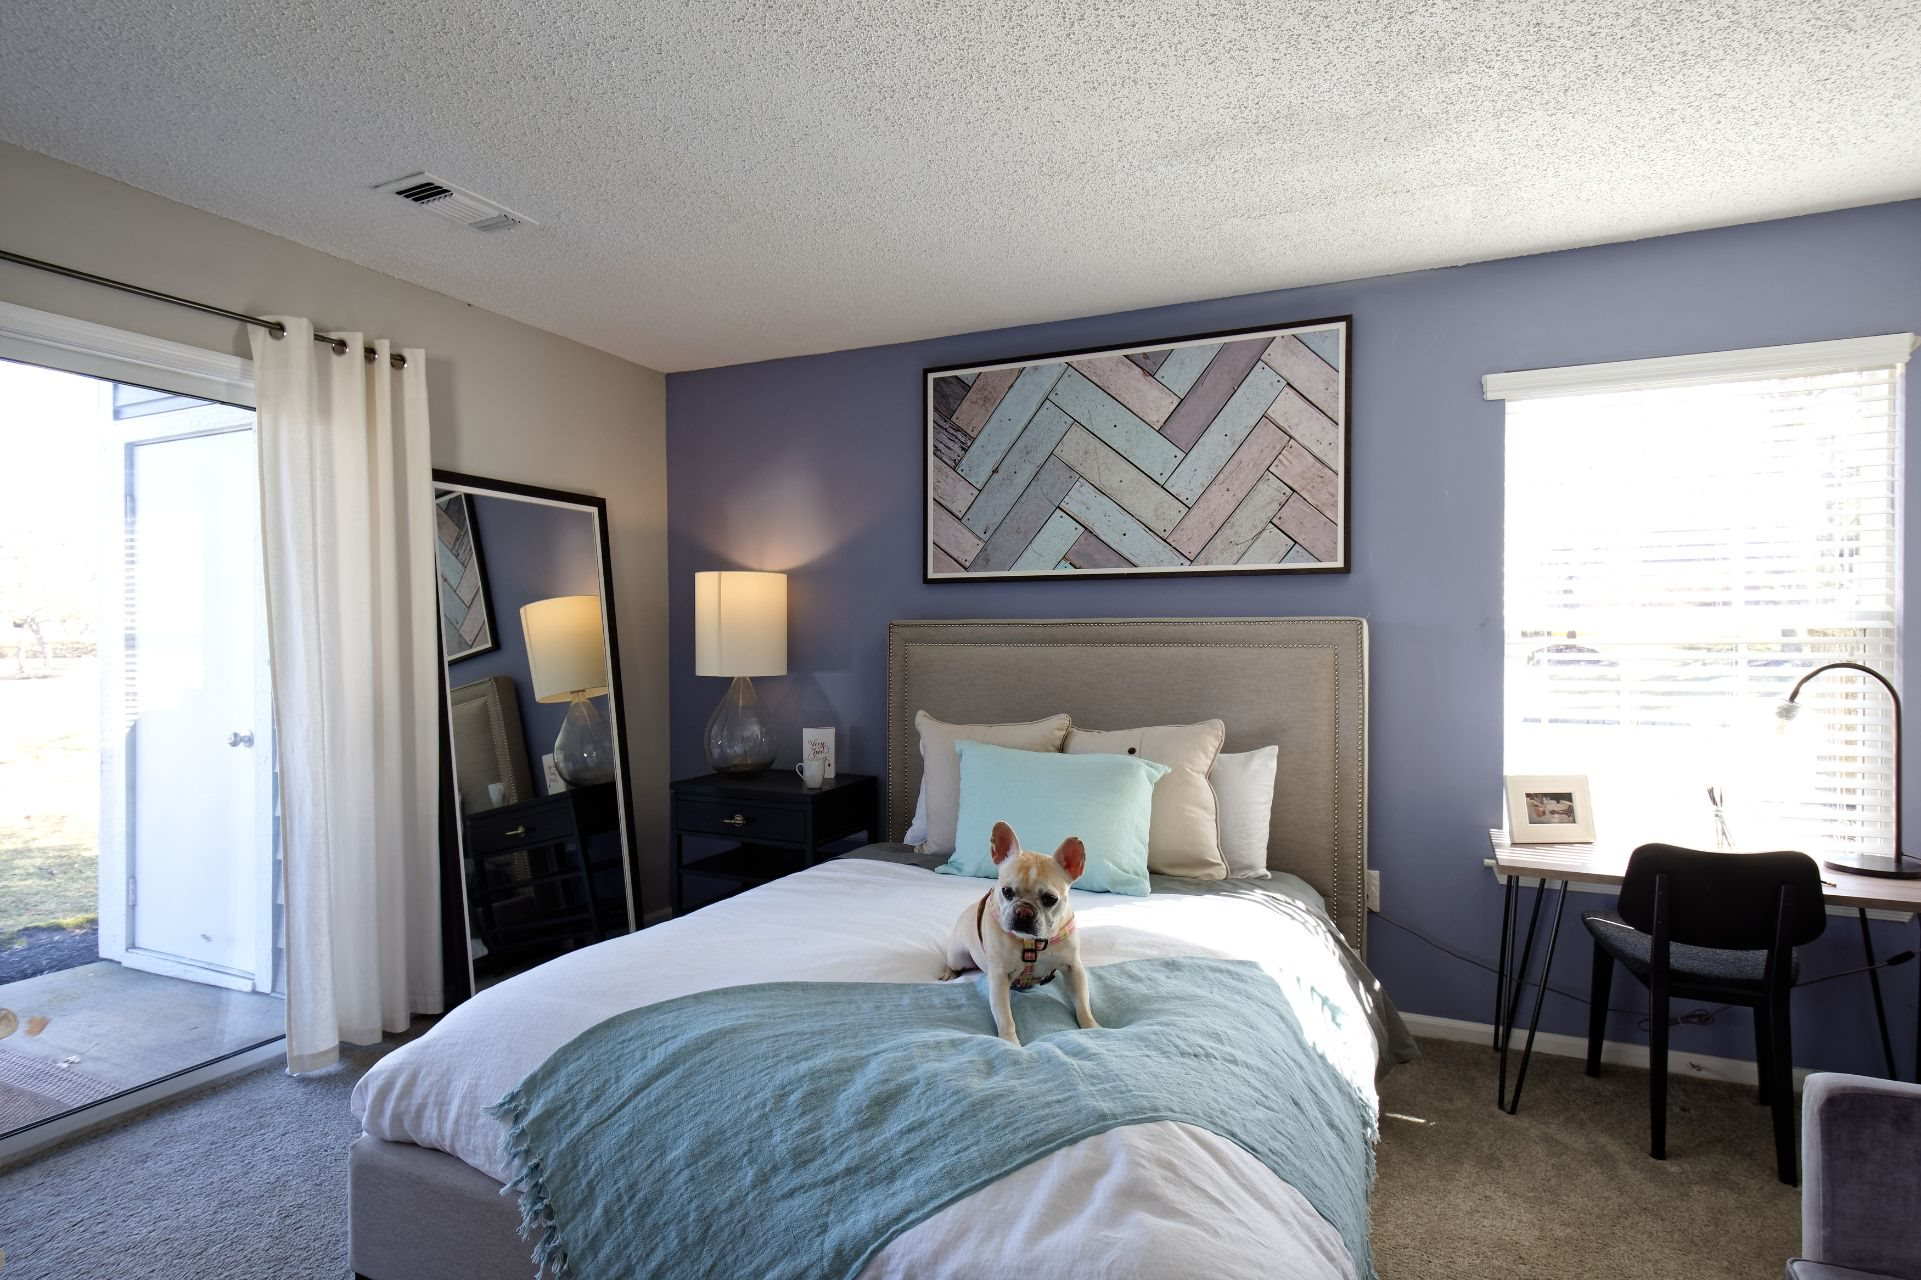 Pet Friendly Newly Renovated 1, 2 and 3 Bedroom Apartments in Lawrenceville NJ with Large Bedrooms and Closets, Work-From-Home Space,  Private Patio and Spa Baths, -1000 Steward Crossing Way Lawrenceville NJ 08646